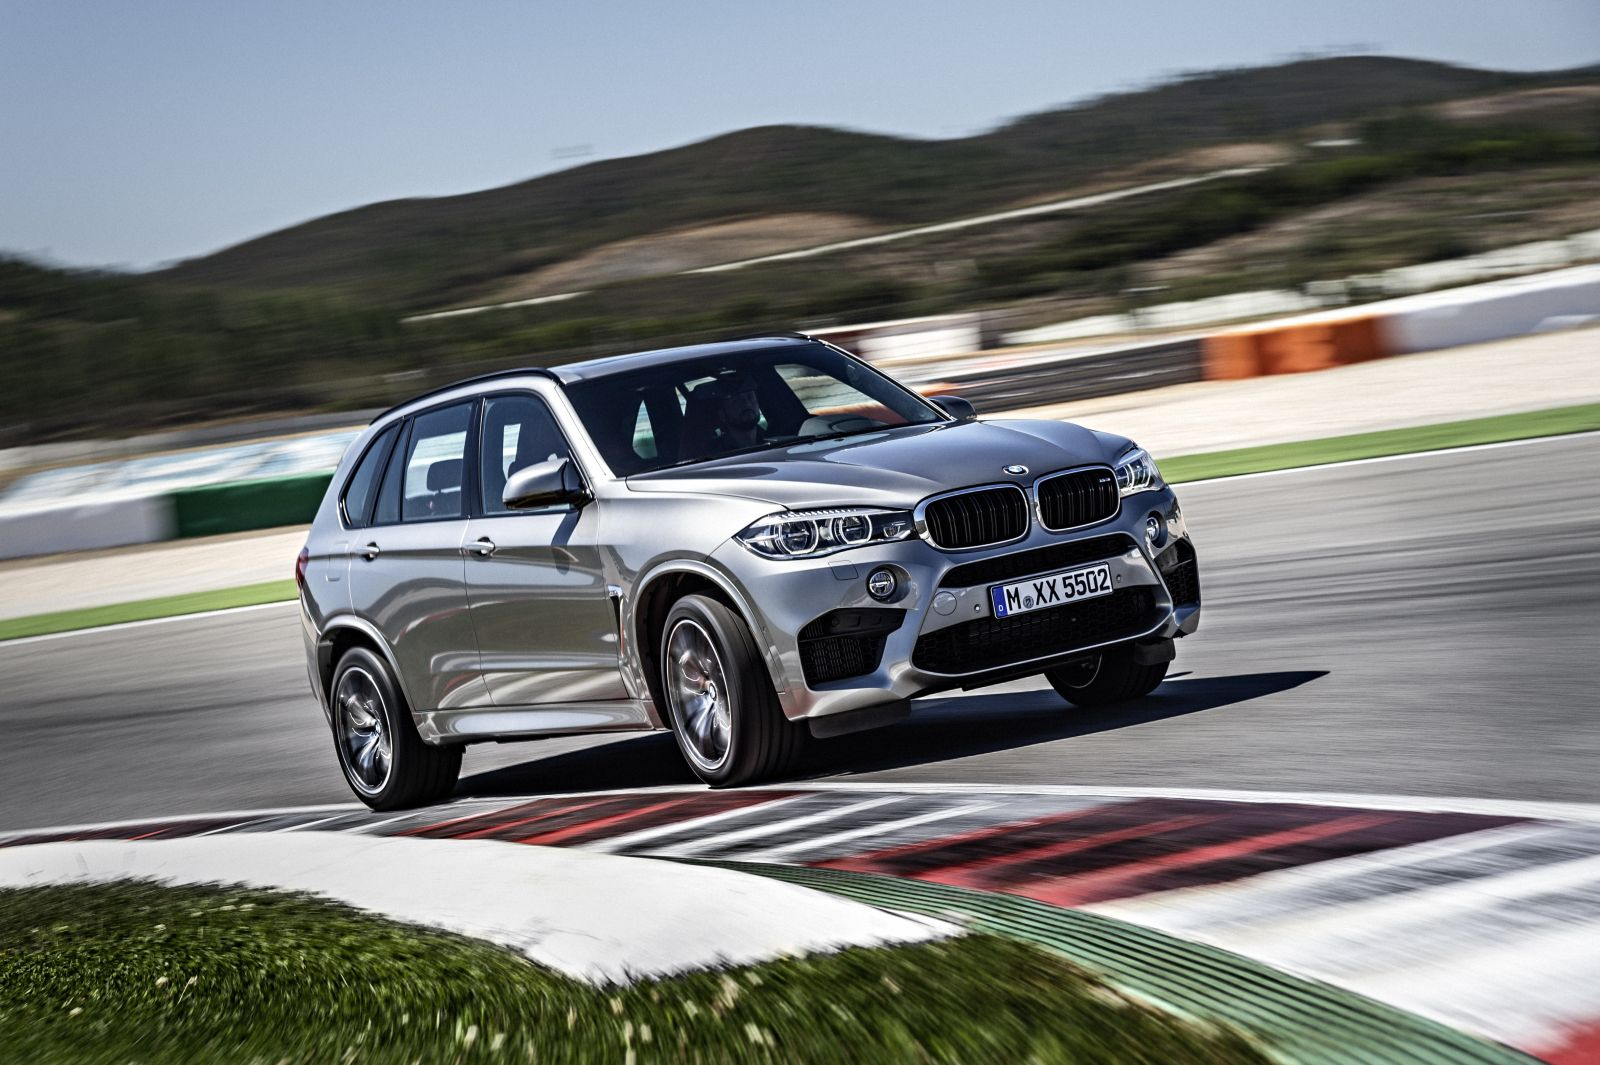 U.S.  sales of the BMW X5 model produced at Plant Spartanburg jumped 14.2% year-over-year in the first six months of 2017. (Photo/Provided)